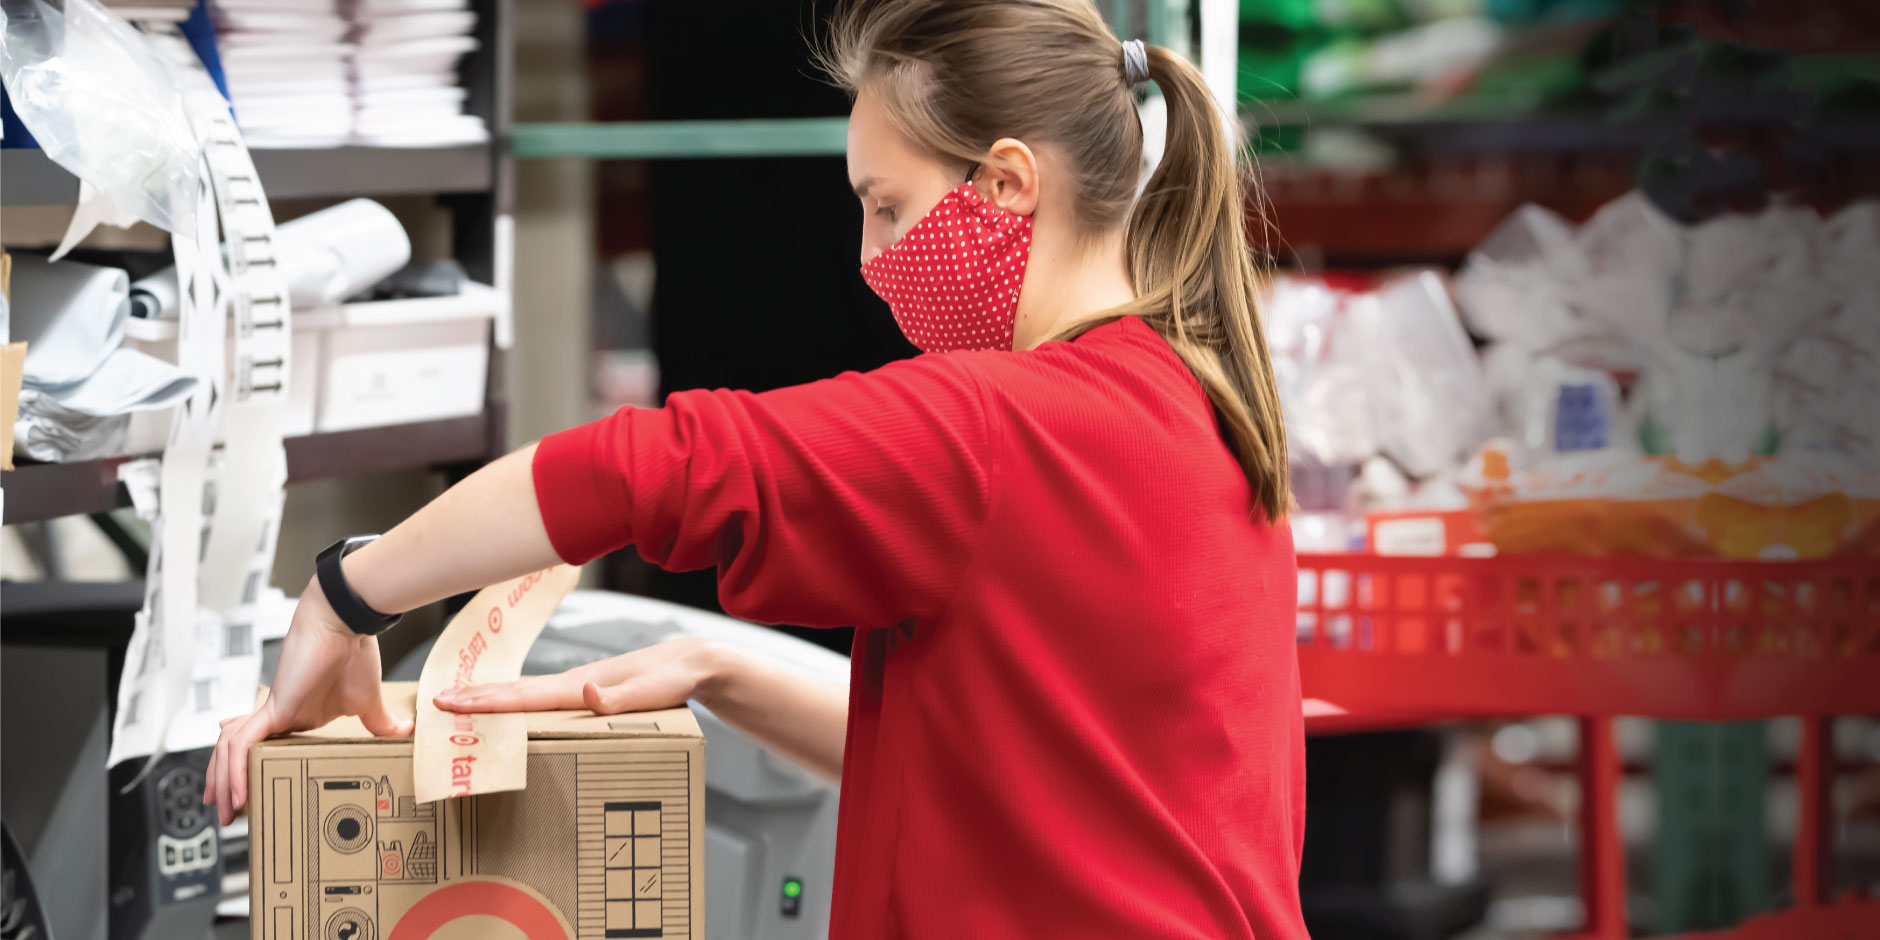 Woman in red polka dot face mask uses tape to secure a box.